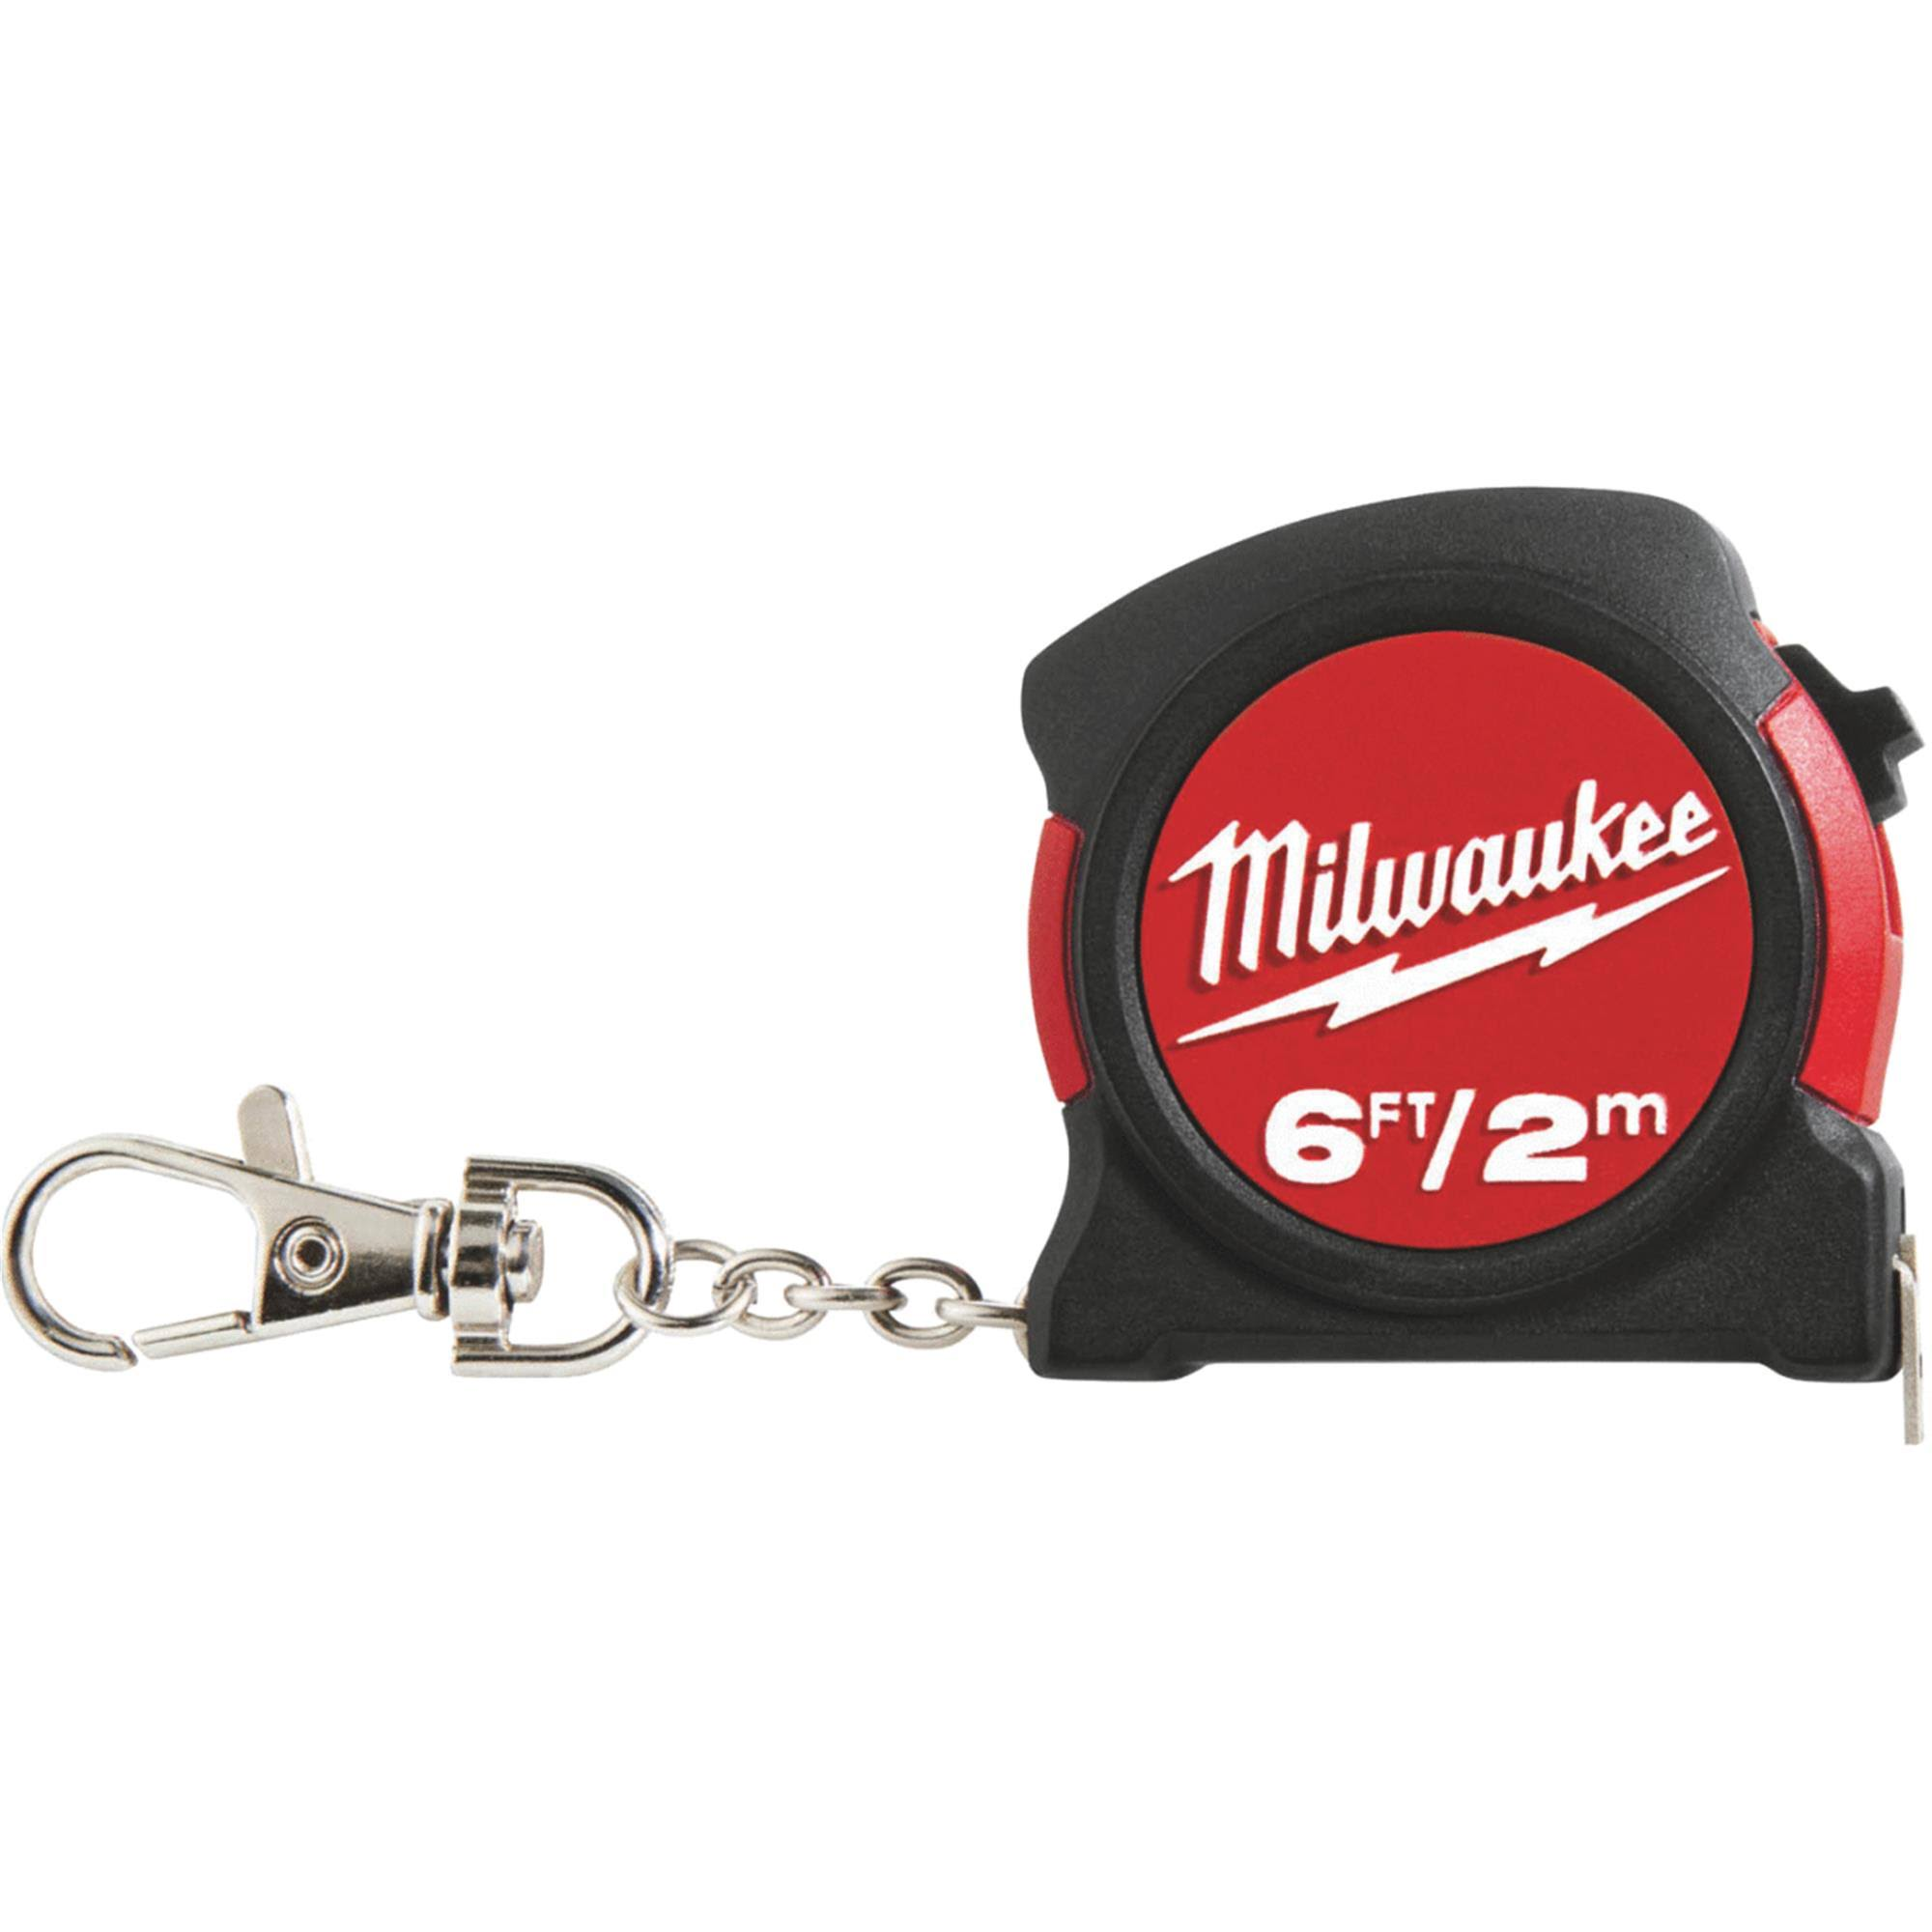 Milwaukee Keychain Tape Measure - 2m